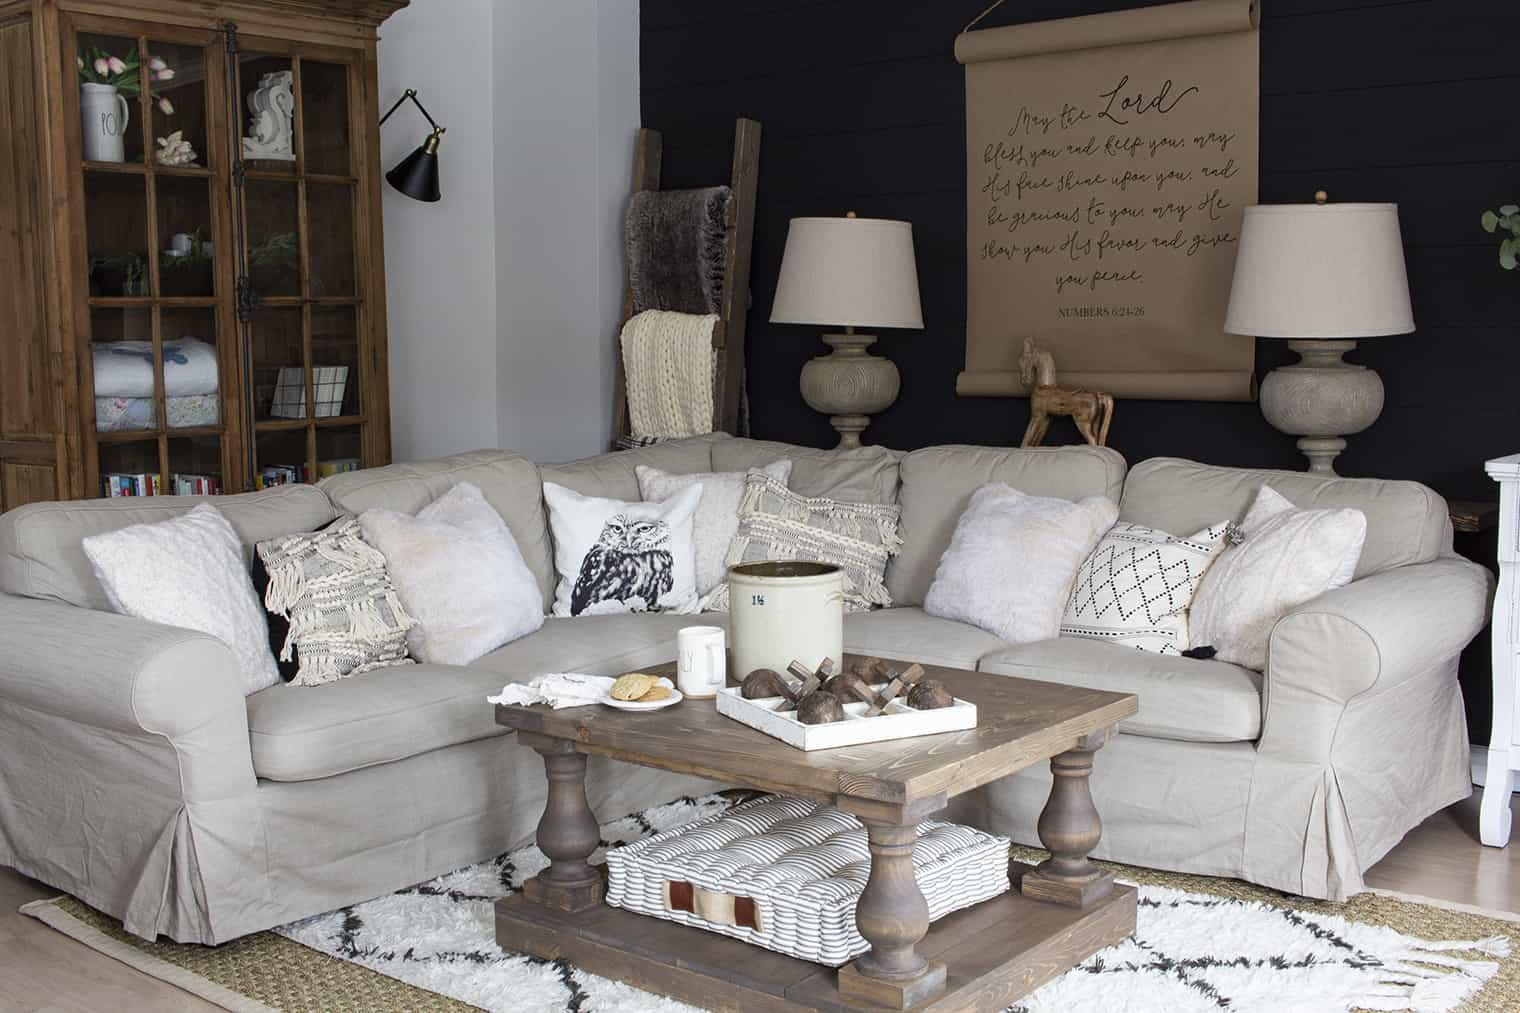 ikea ektorp sectional couch farmhouse style